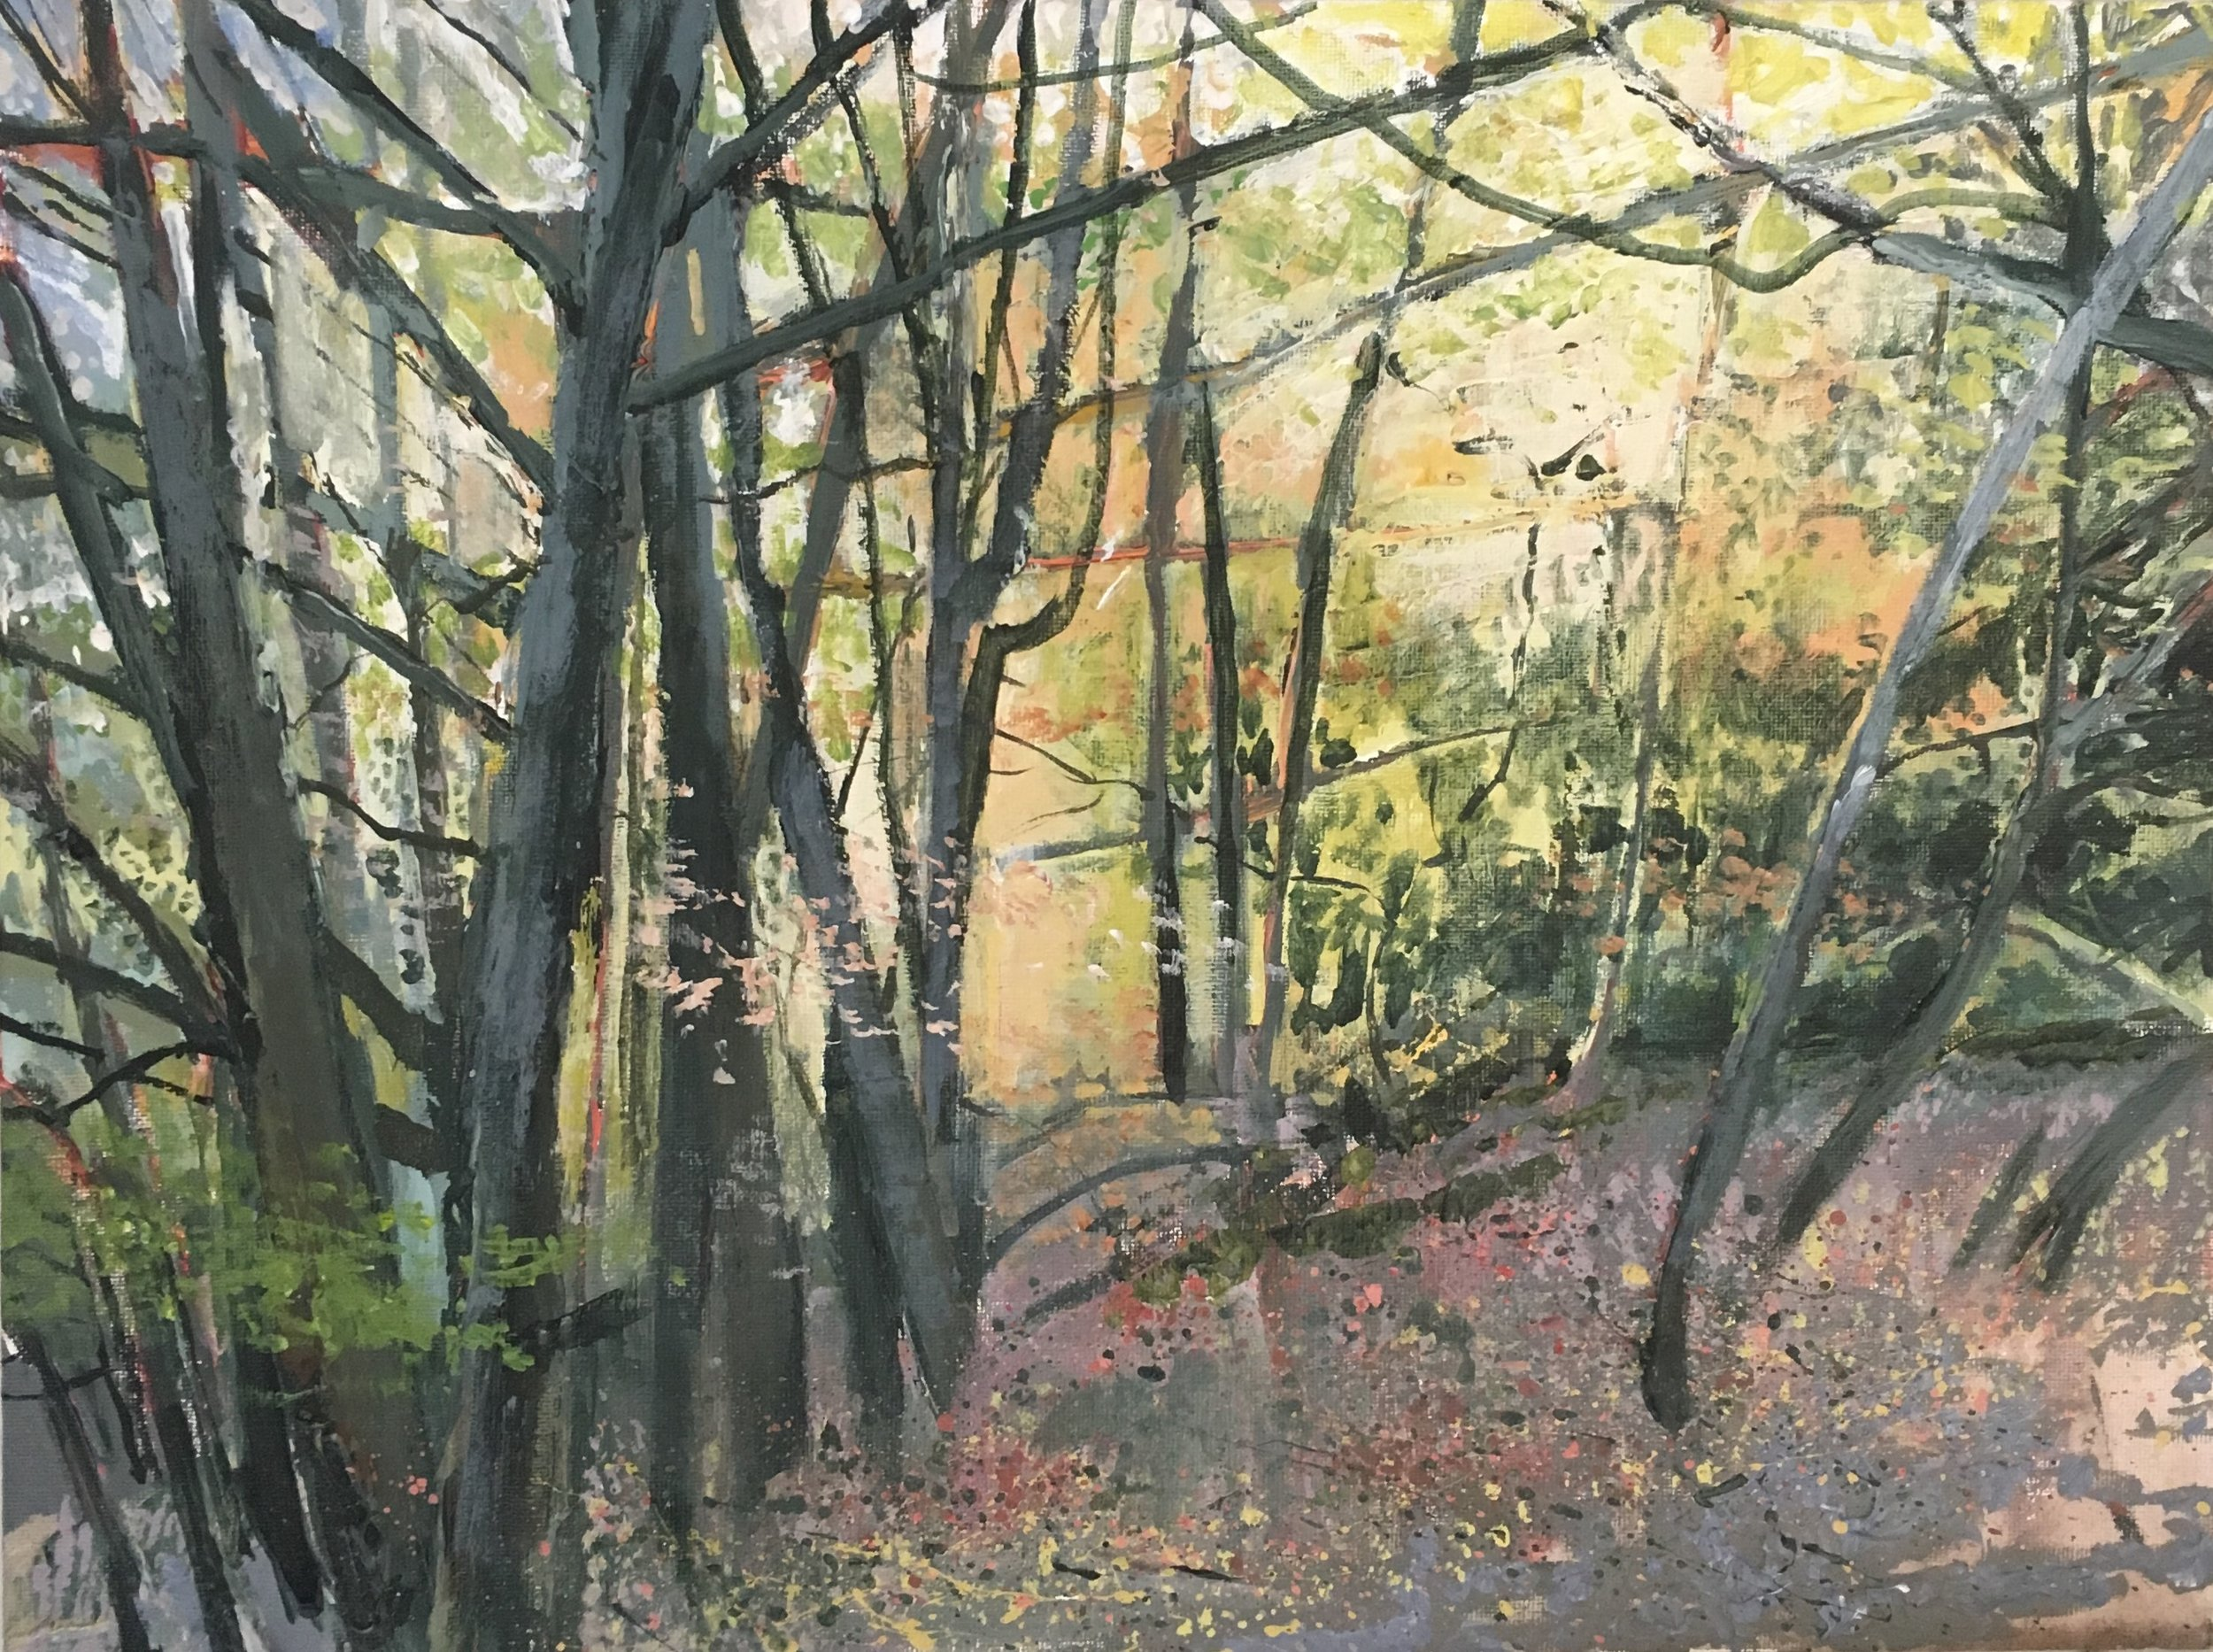 Highgate Wood, Acrylic on canvas, 23 x 30 cm, £300